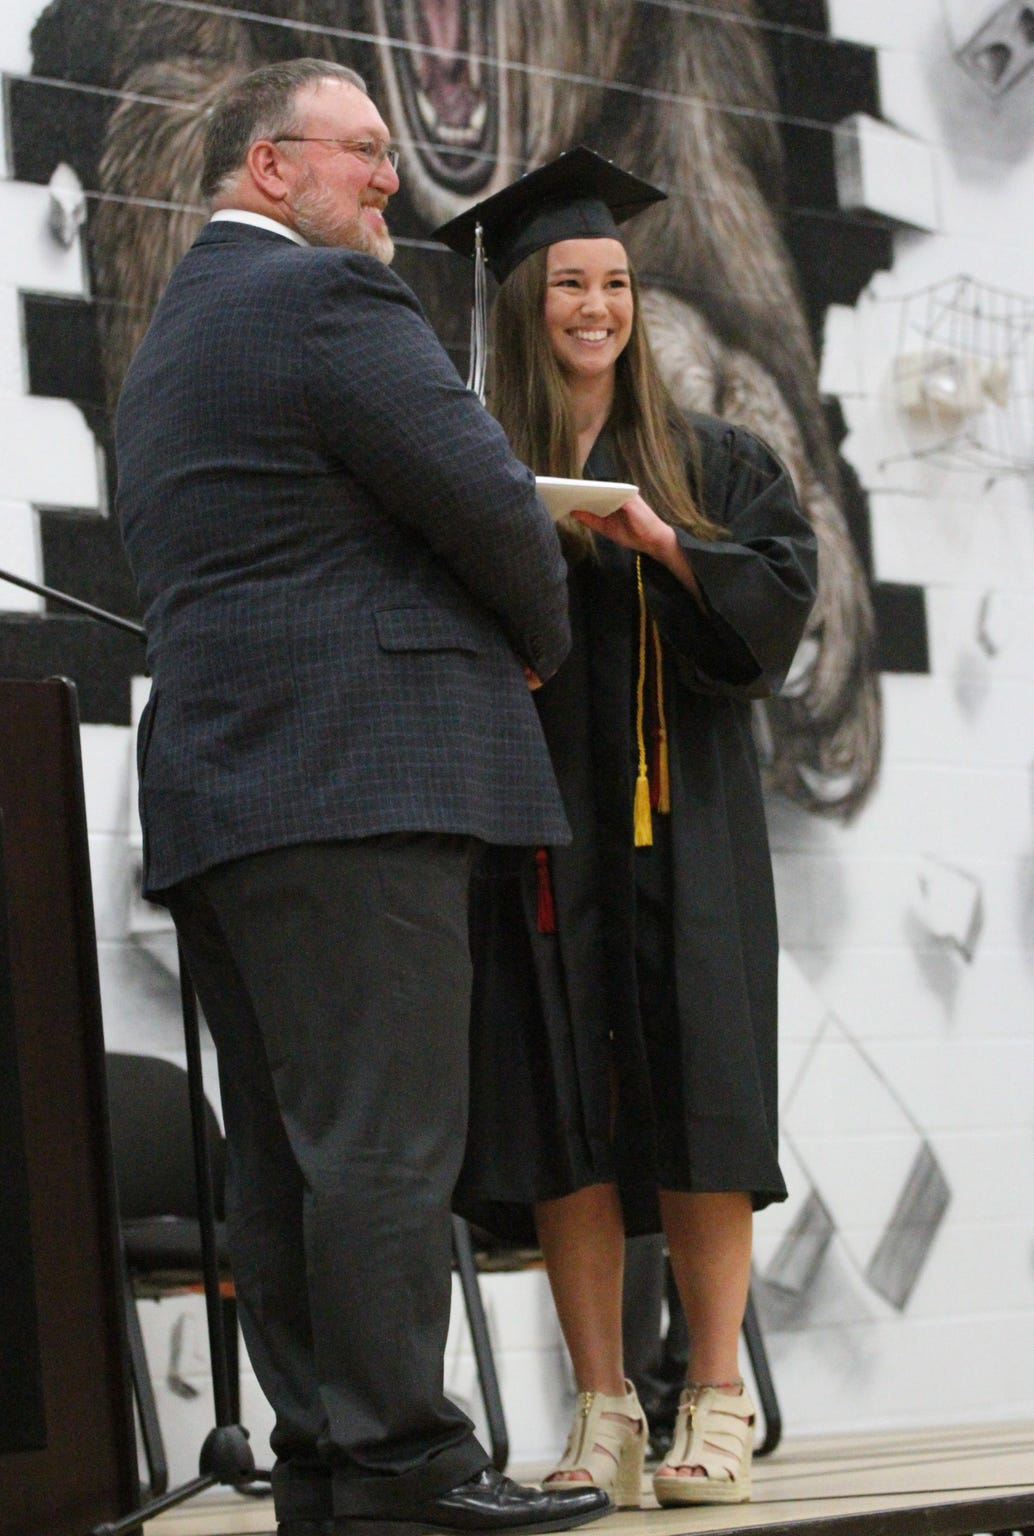 Mollie Tibbetts receives her diploma from Ed Kline, BGM school board president, during the 2017 commencement ceremonies.